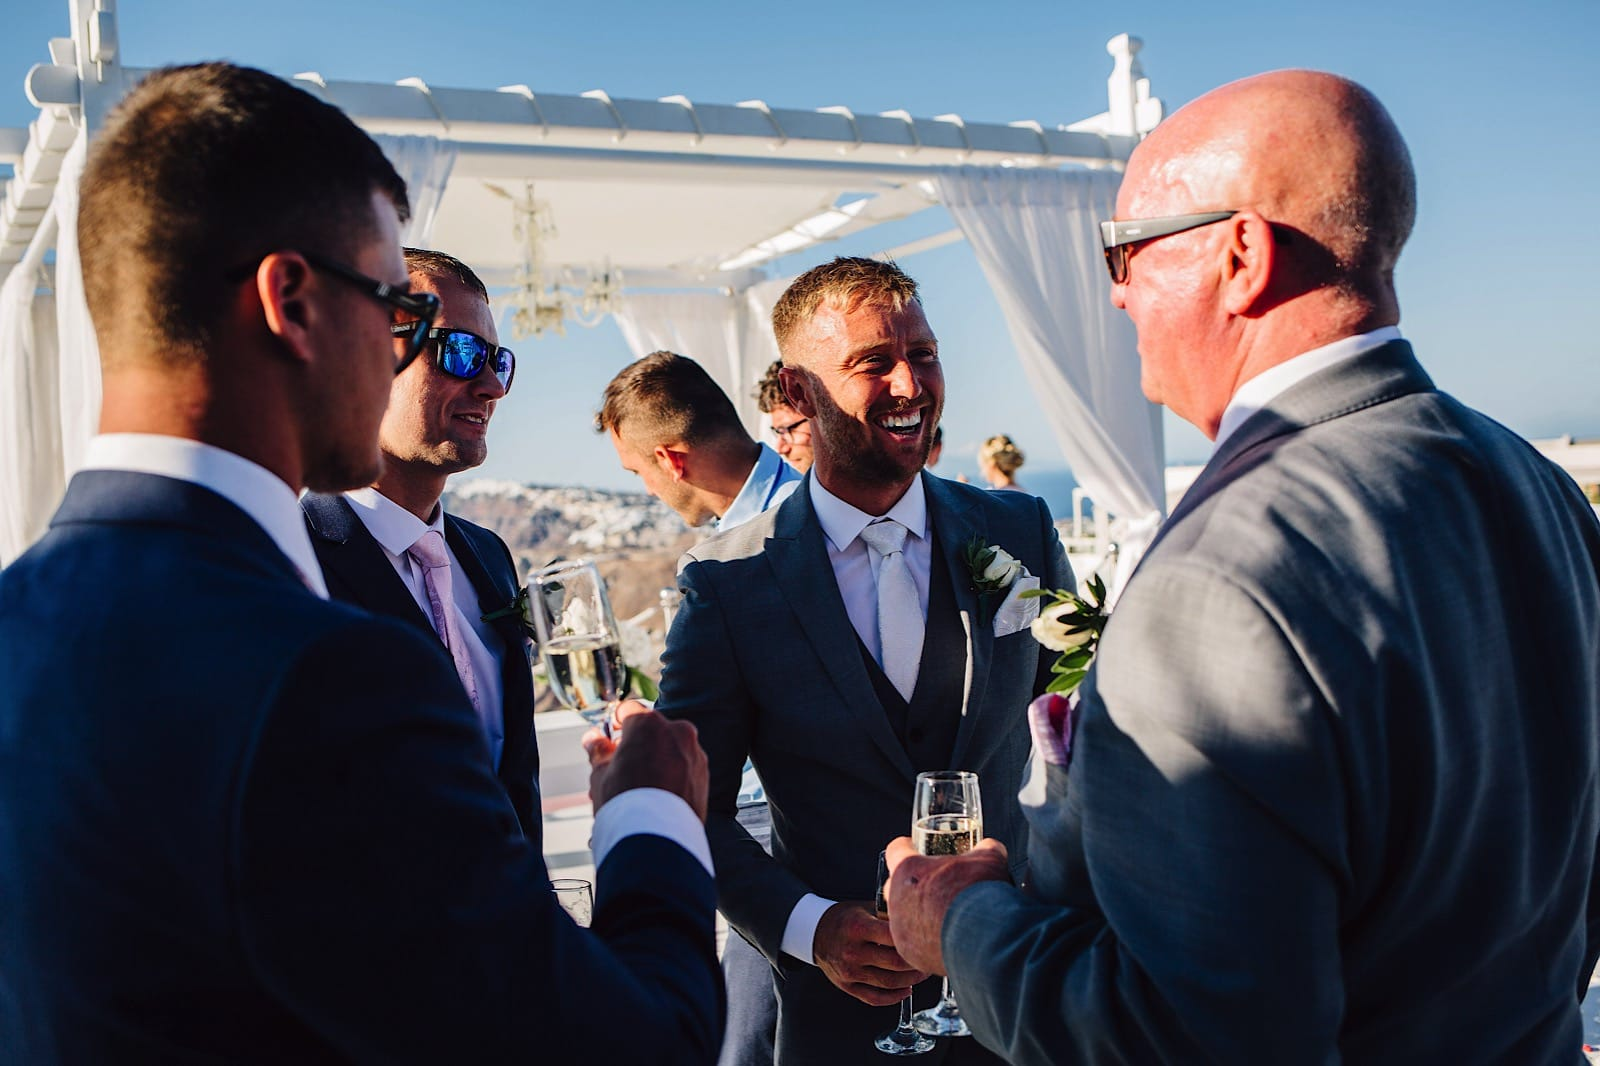 santorini-wedding-photographer-0061